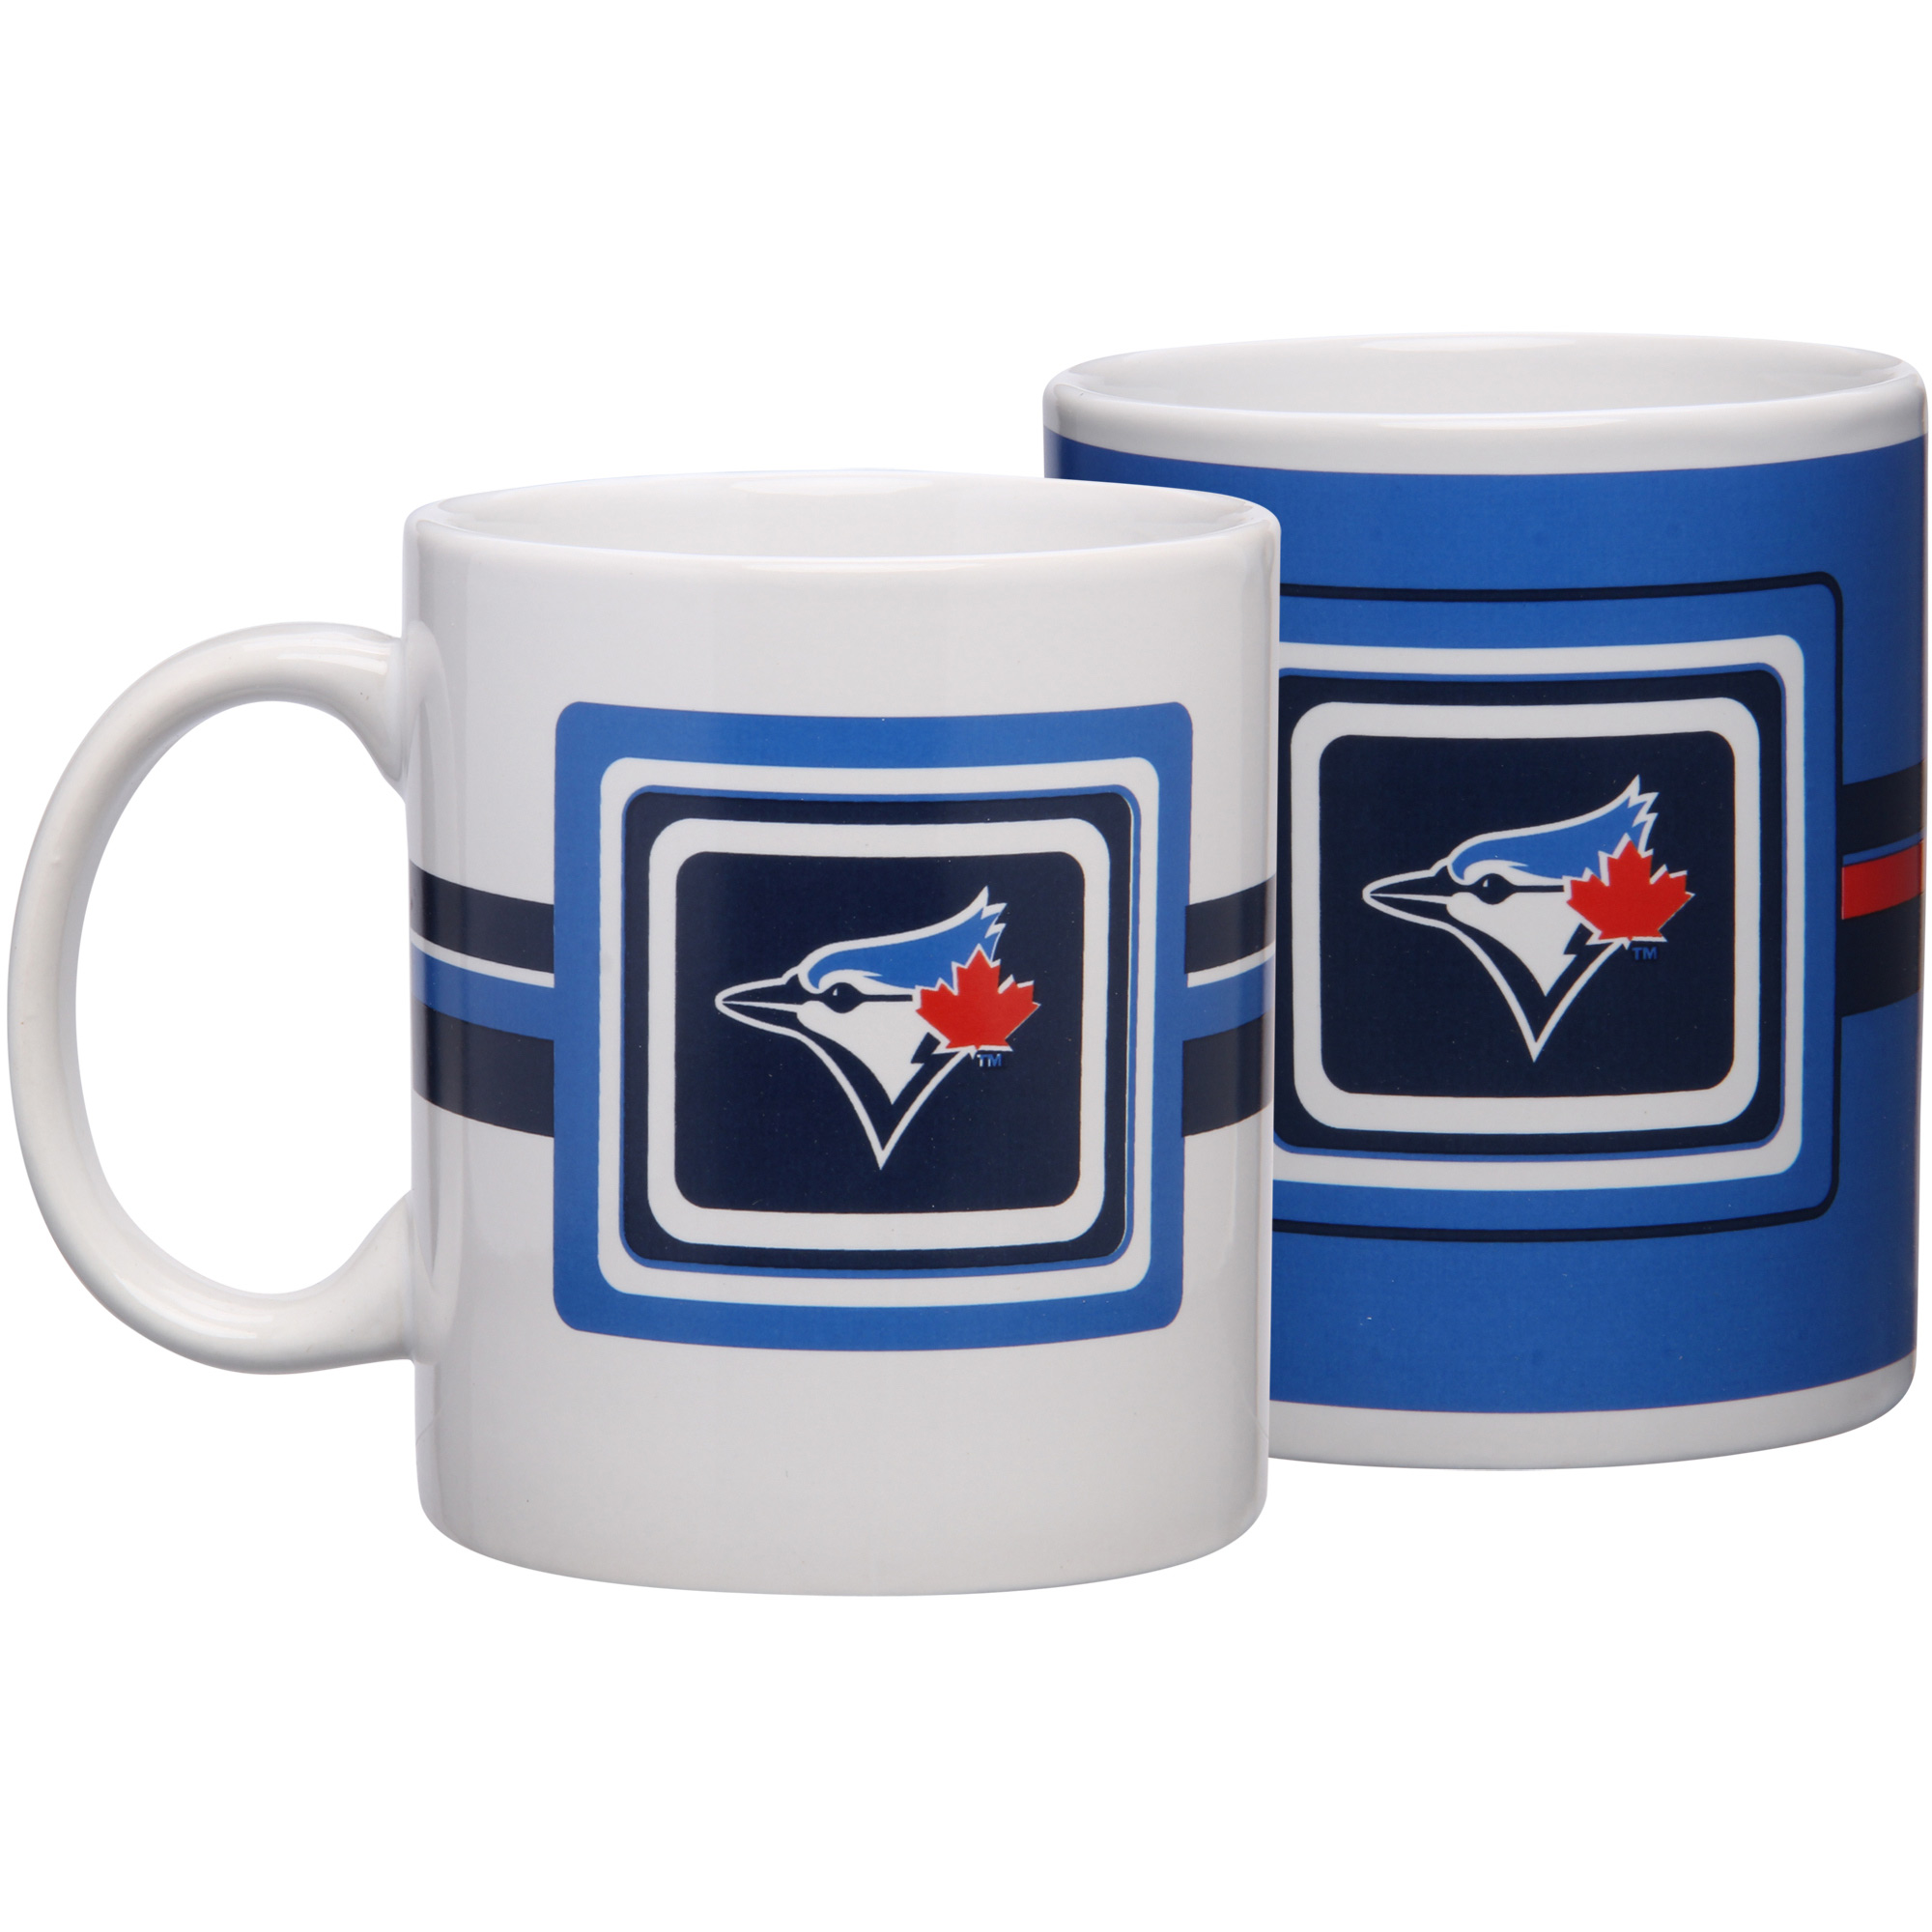 Toronto Blue Jays 11oz. Two-Pack Mug Set - No Size